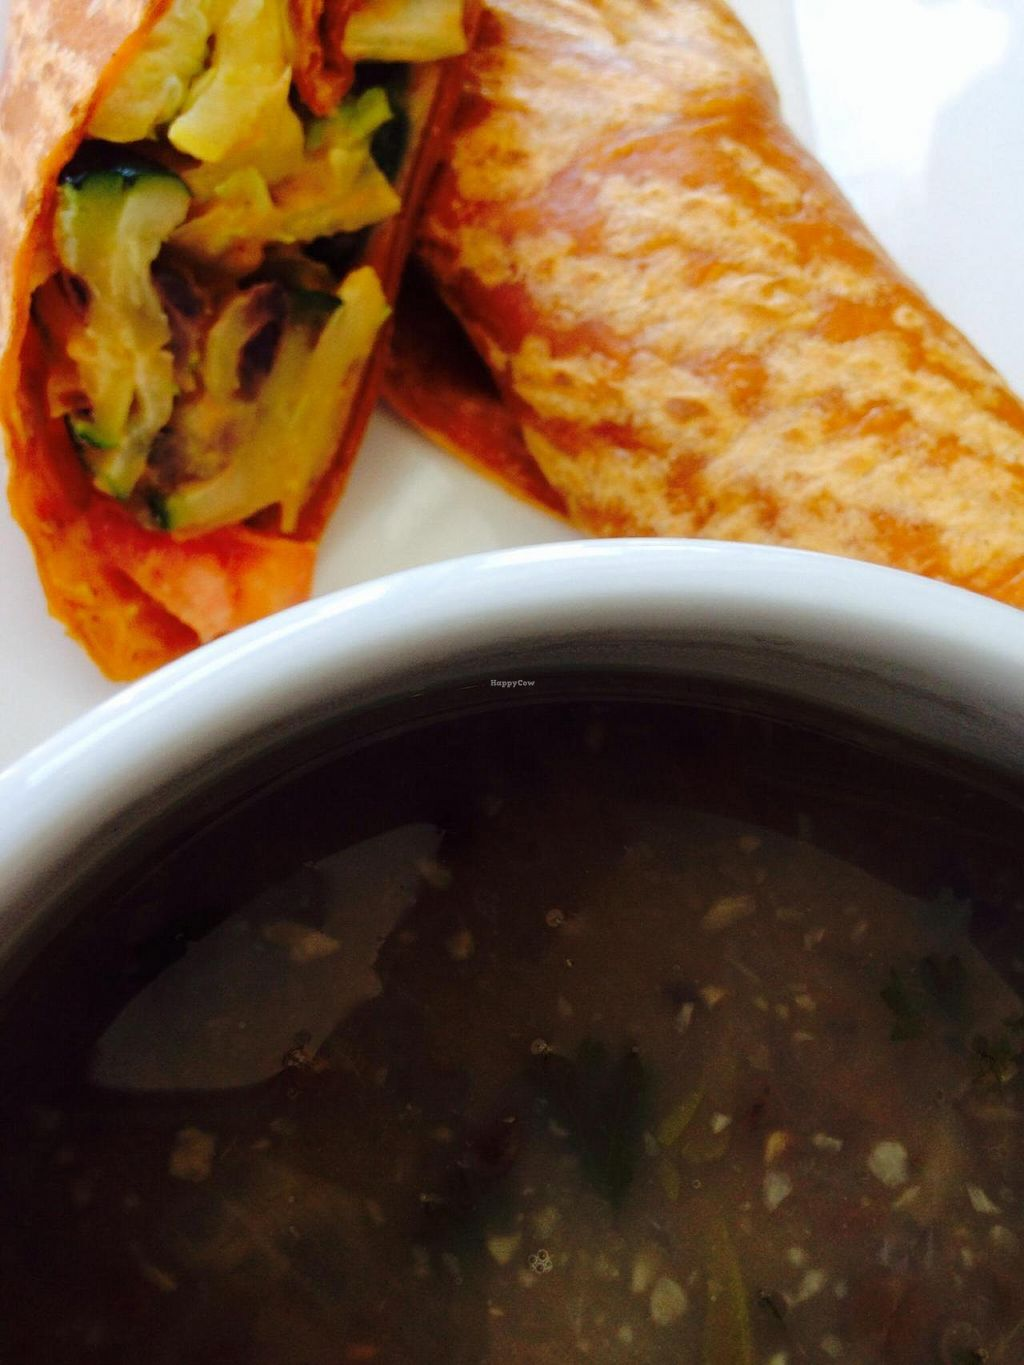 """Photo of CLOSED: Flaxella  by <a href=""""/members/profile/cookiem"""">cookiem</a> <br/>Vegan veggie wrap and vegan lentil soup <br/> August 14, 2014  - <a href='/contact/abuse/image/30165/76915'>Report</a>"""